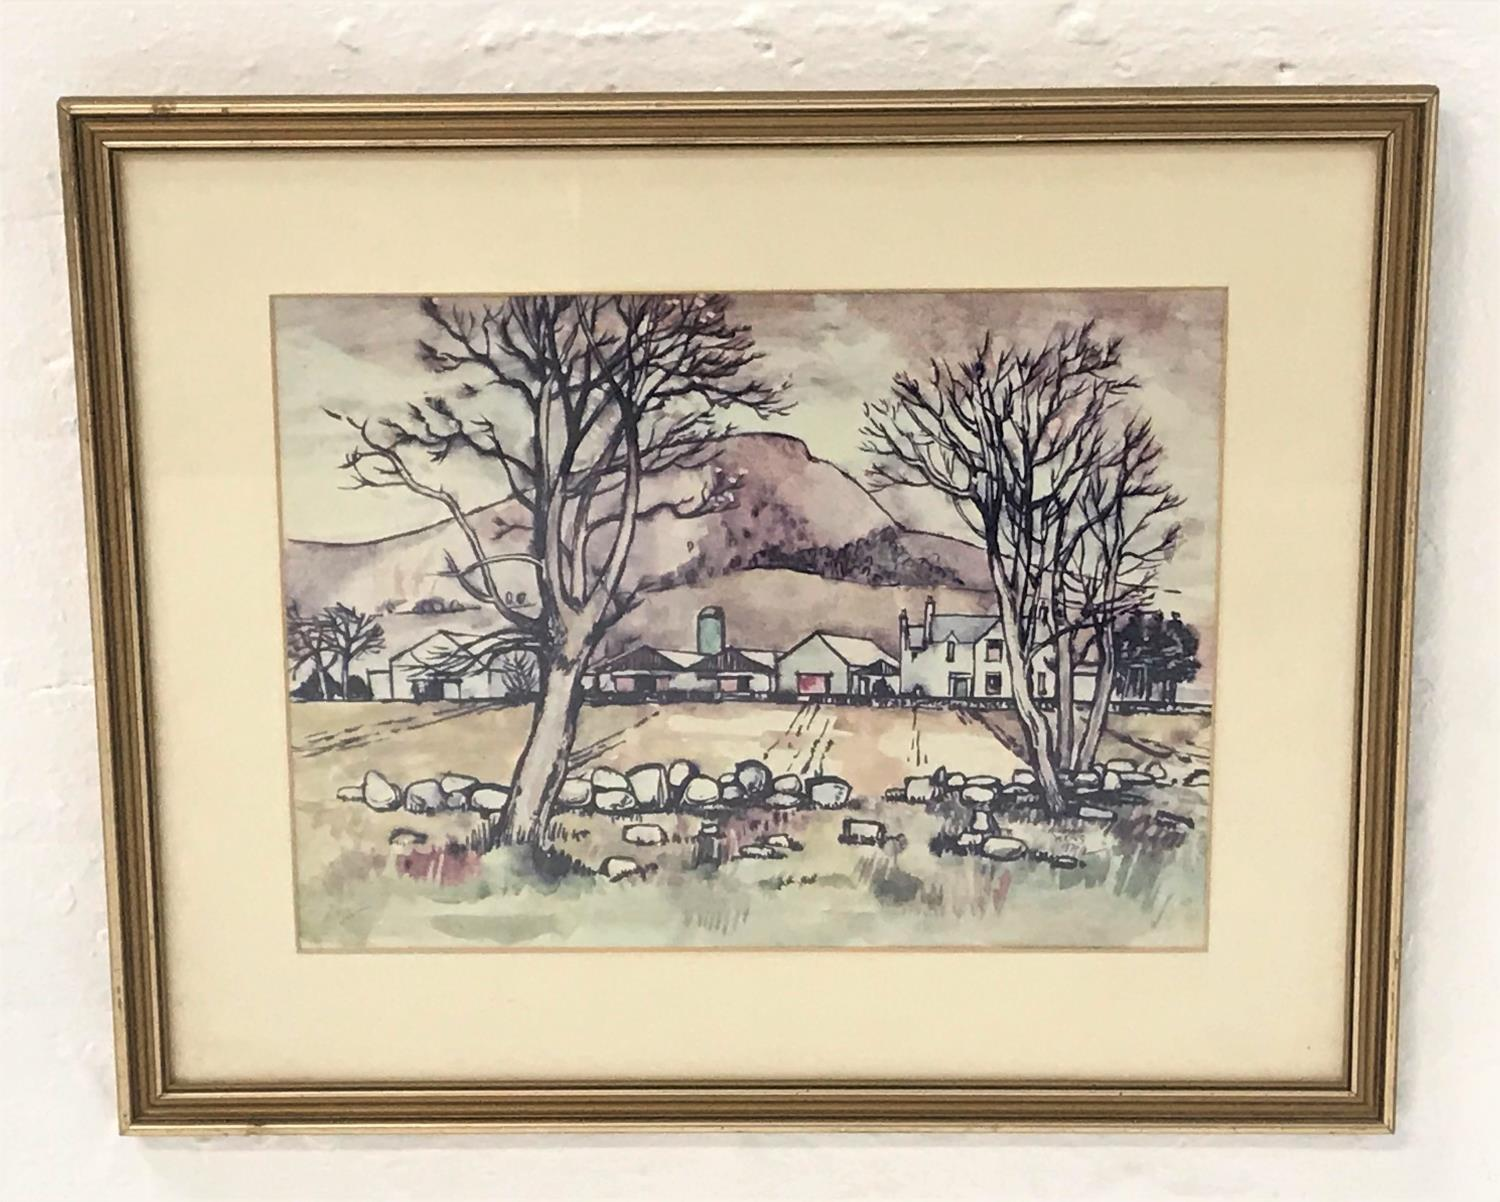 Lot 385 - NORMAN YOUNG The Croft, watercolour, signed and dated 1975, 28cm x 38cm